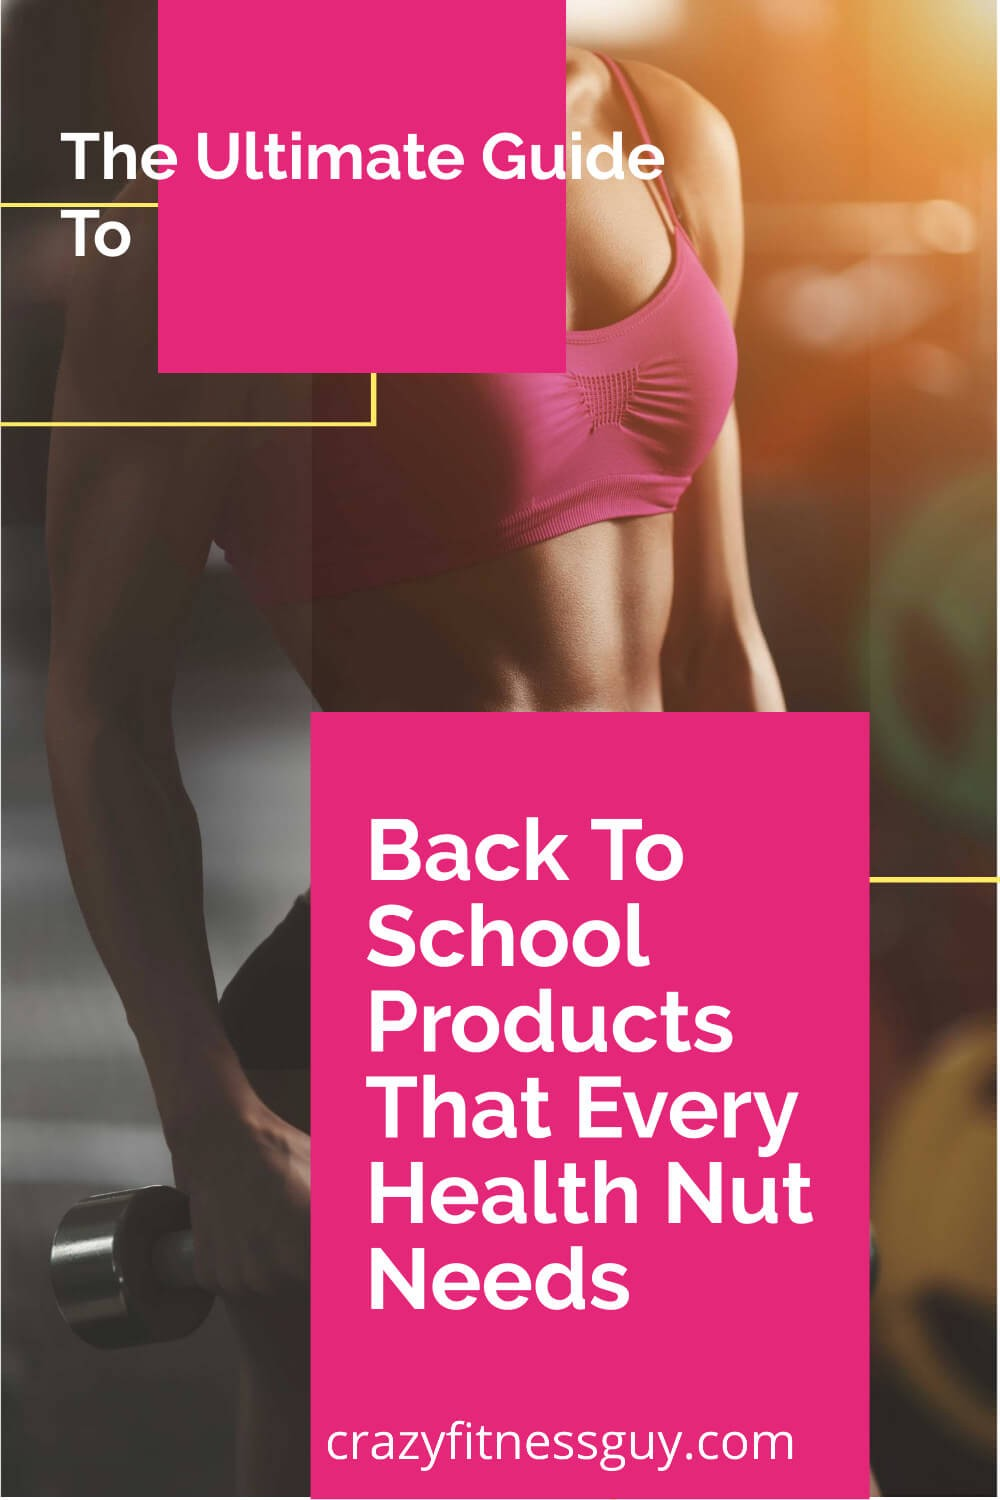 Back To School Products That Every Health Nut Needs